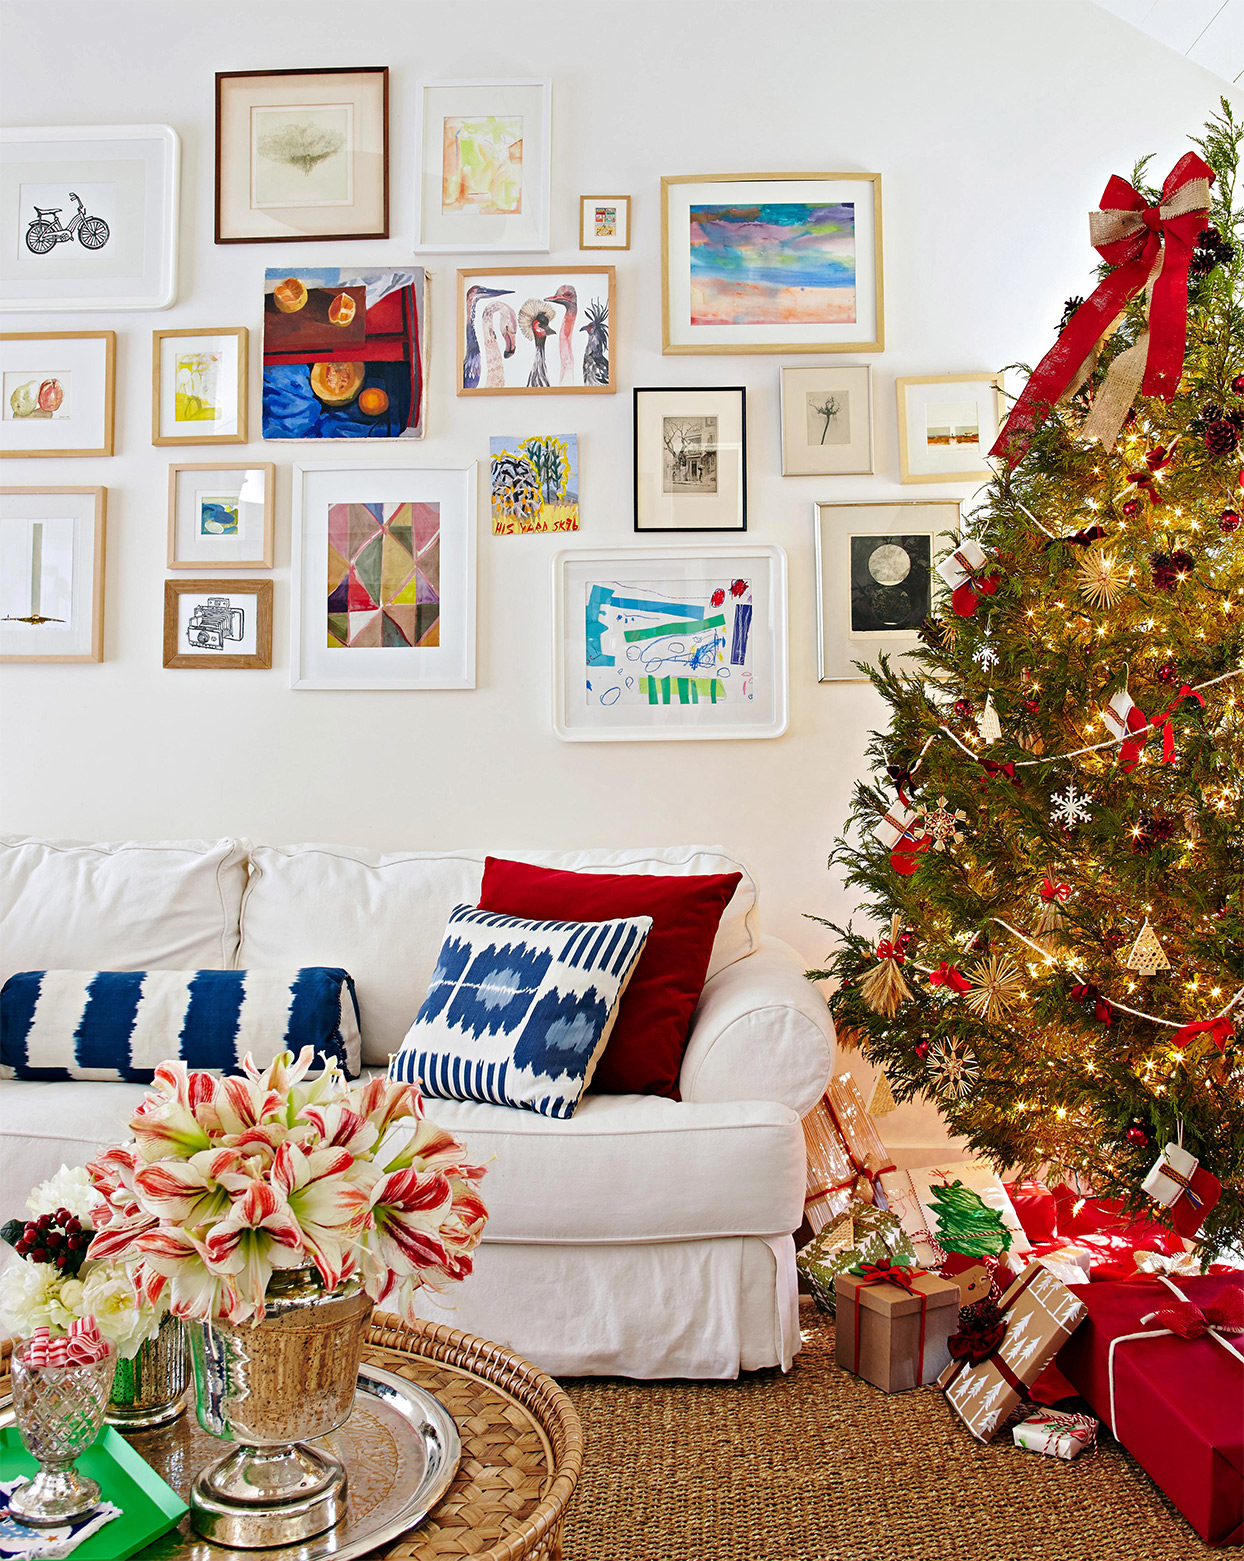 white slipcovered sofa under eclectic gallery wall near decorated Christmas tree